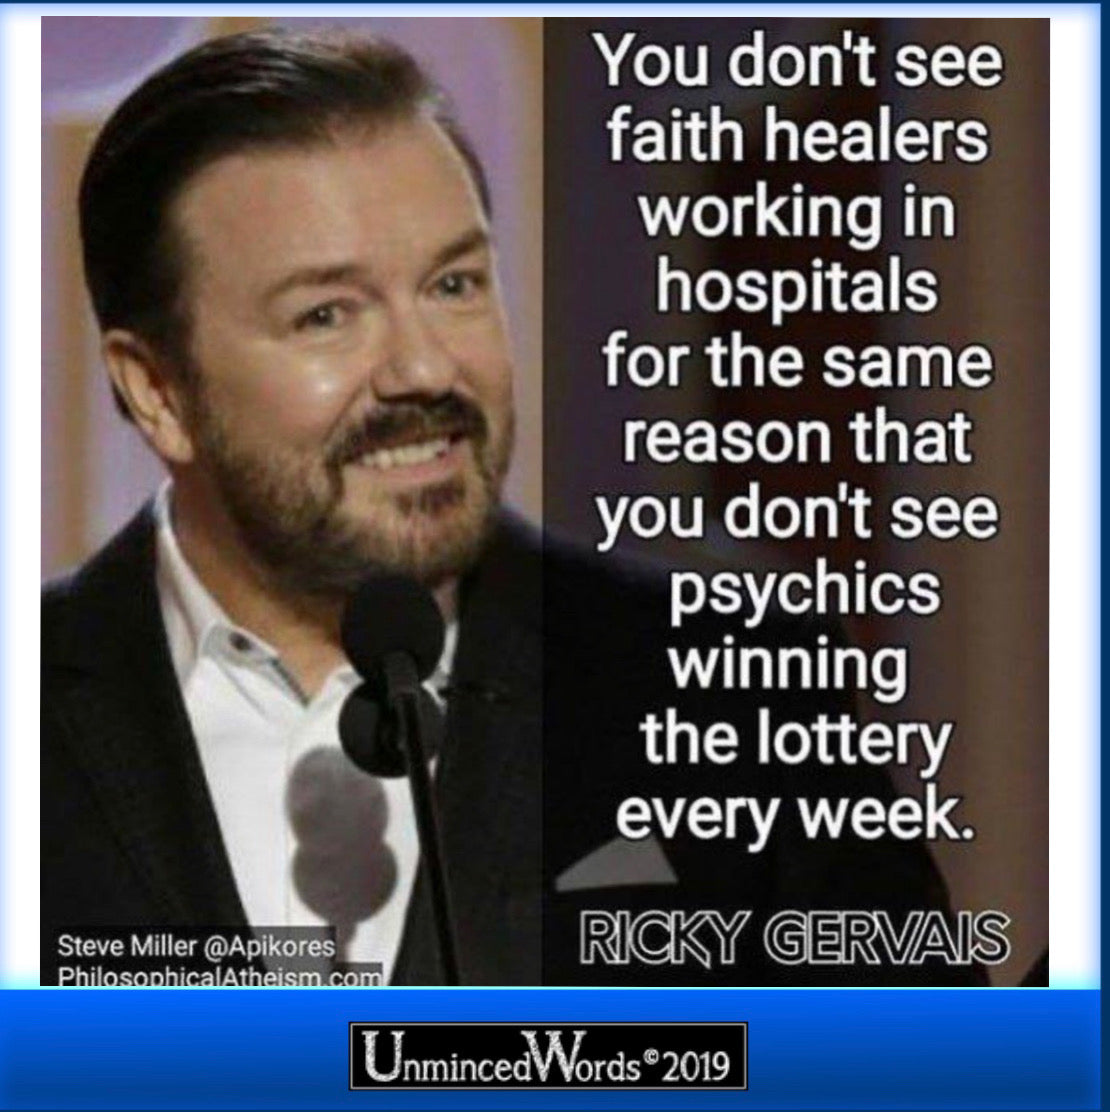 Ricky Gervais got this one right